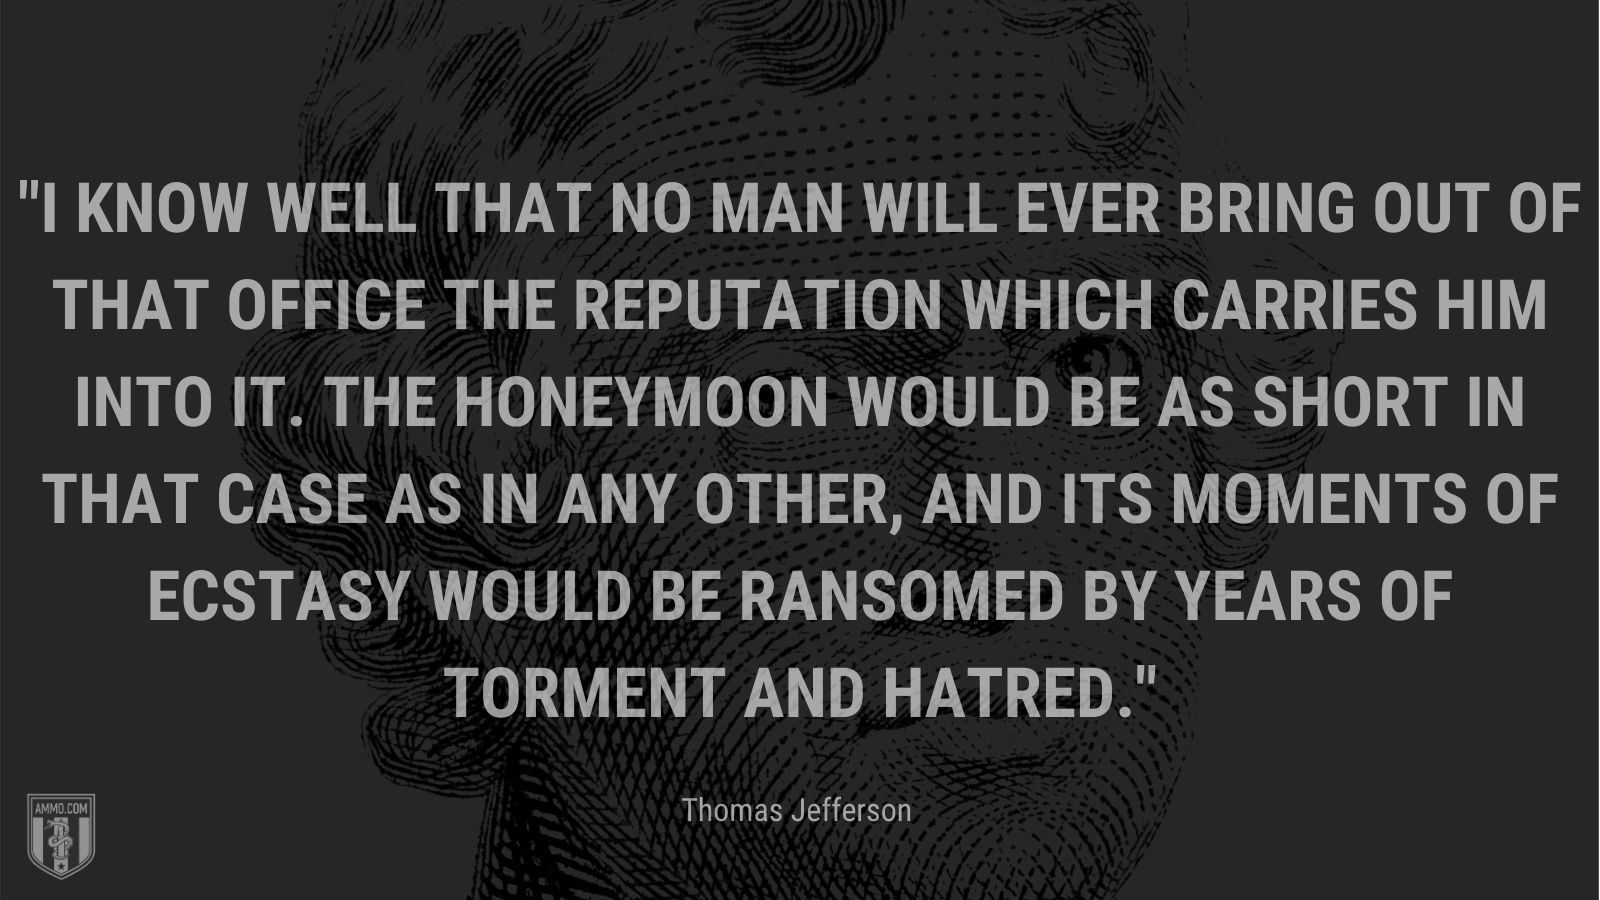 """""""I know well that no man will ever bring out of that office the reputation which carries him into it. The honeymoon would be as short in that case as in any other, and its moments of ecstasy would be ransomed by years of torment and hatred."""" - Thomas Jefferson"""